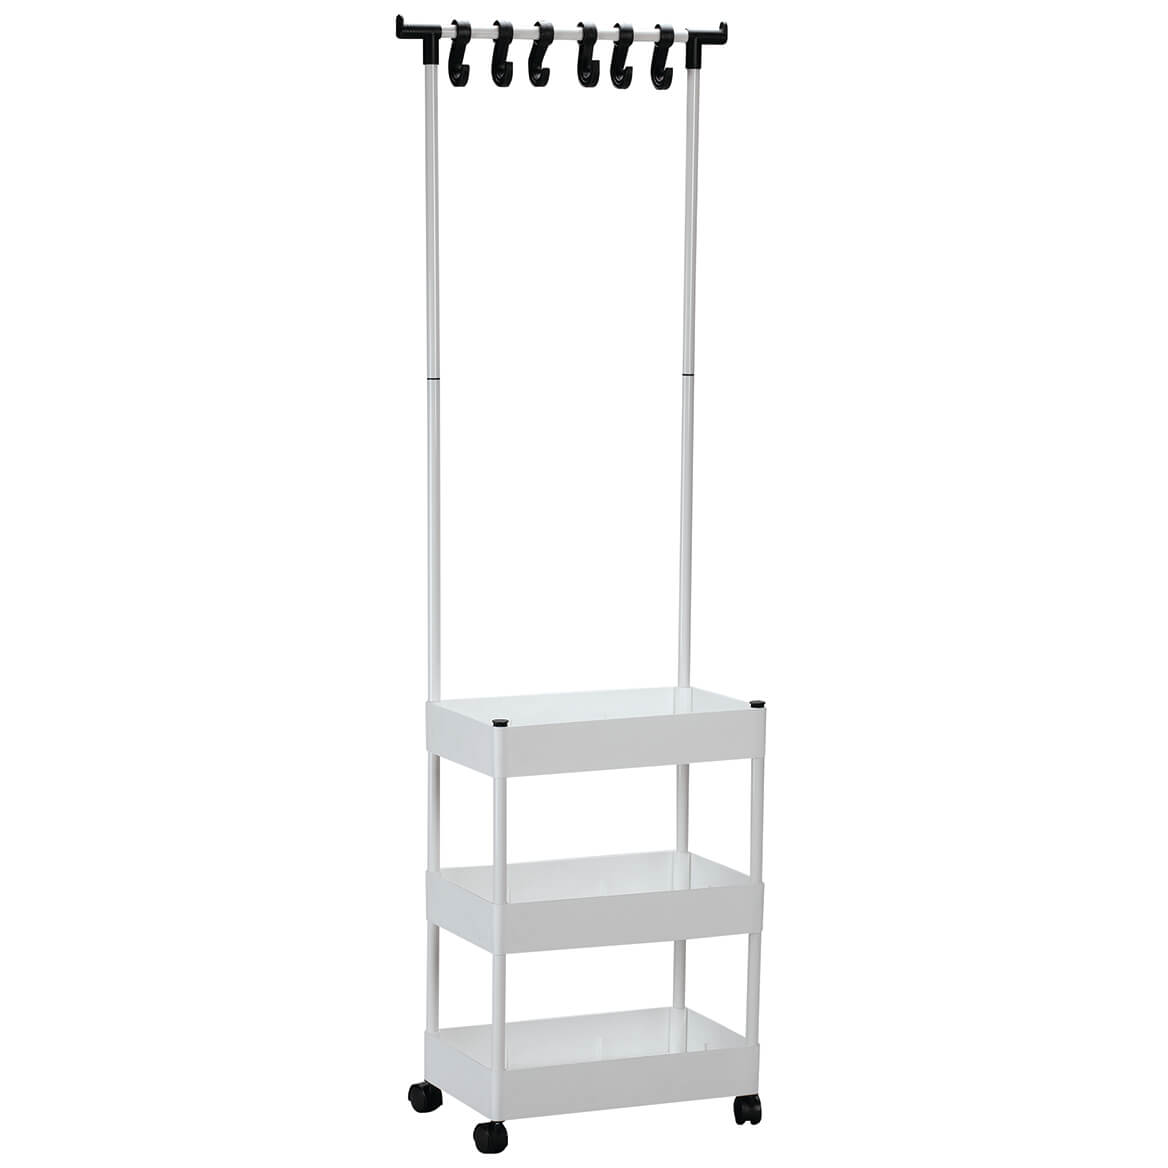 3 Tier Rolling Closet Organizer with Clothes Hanger     XL-371068